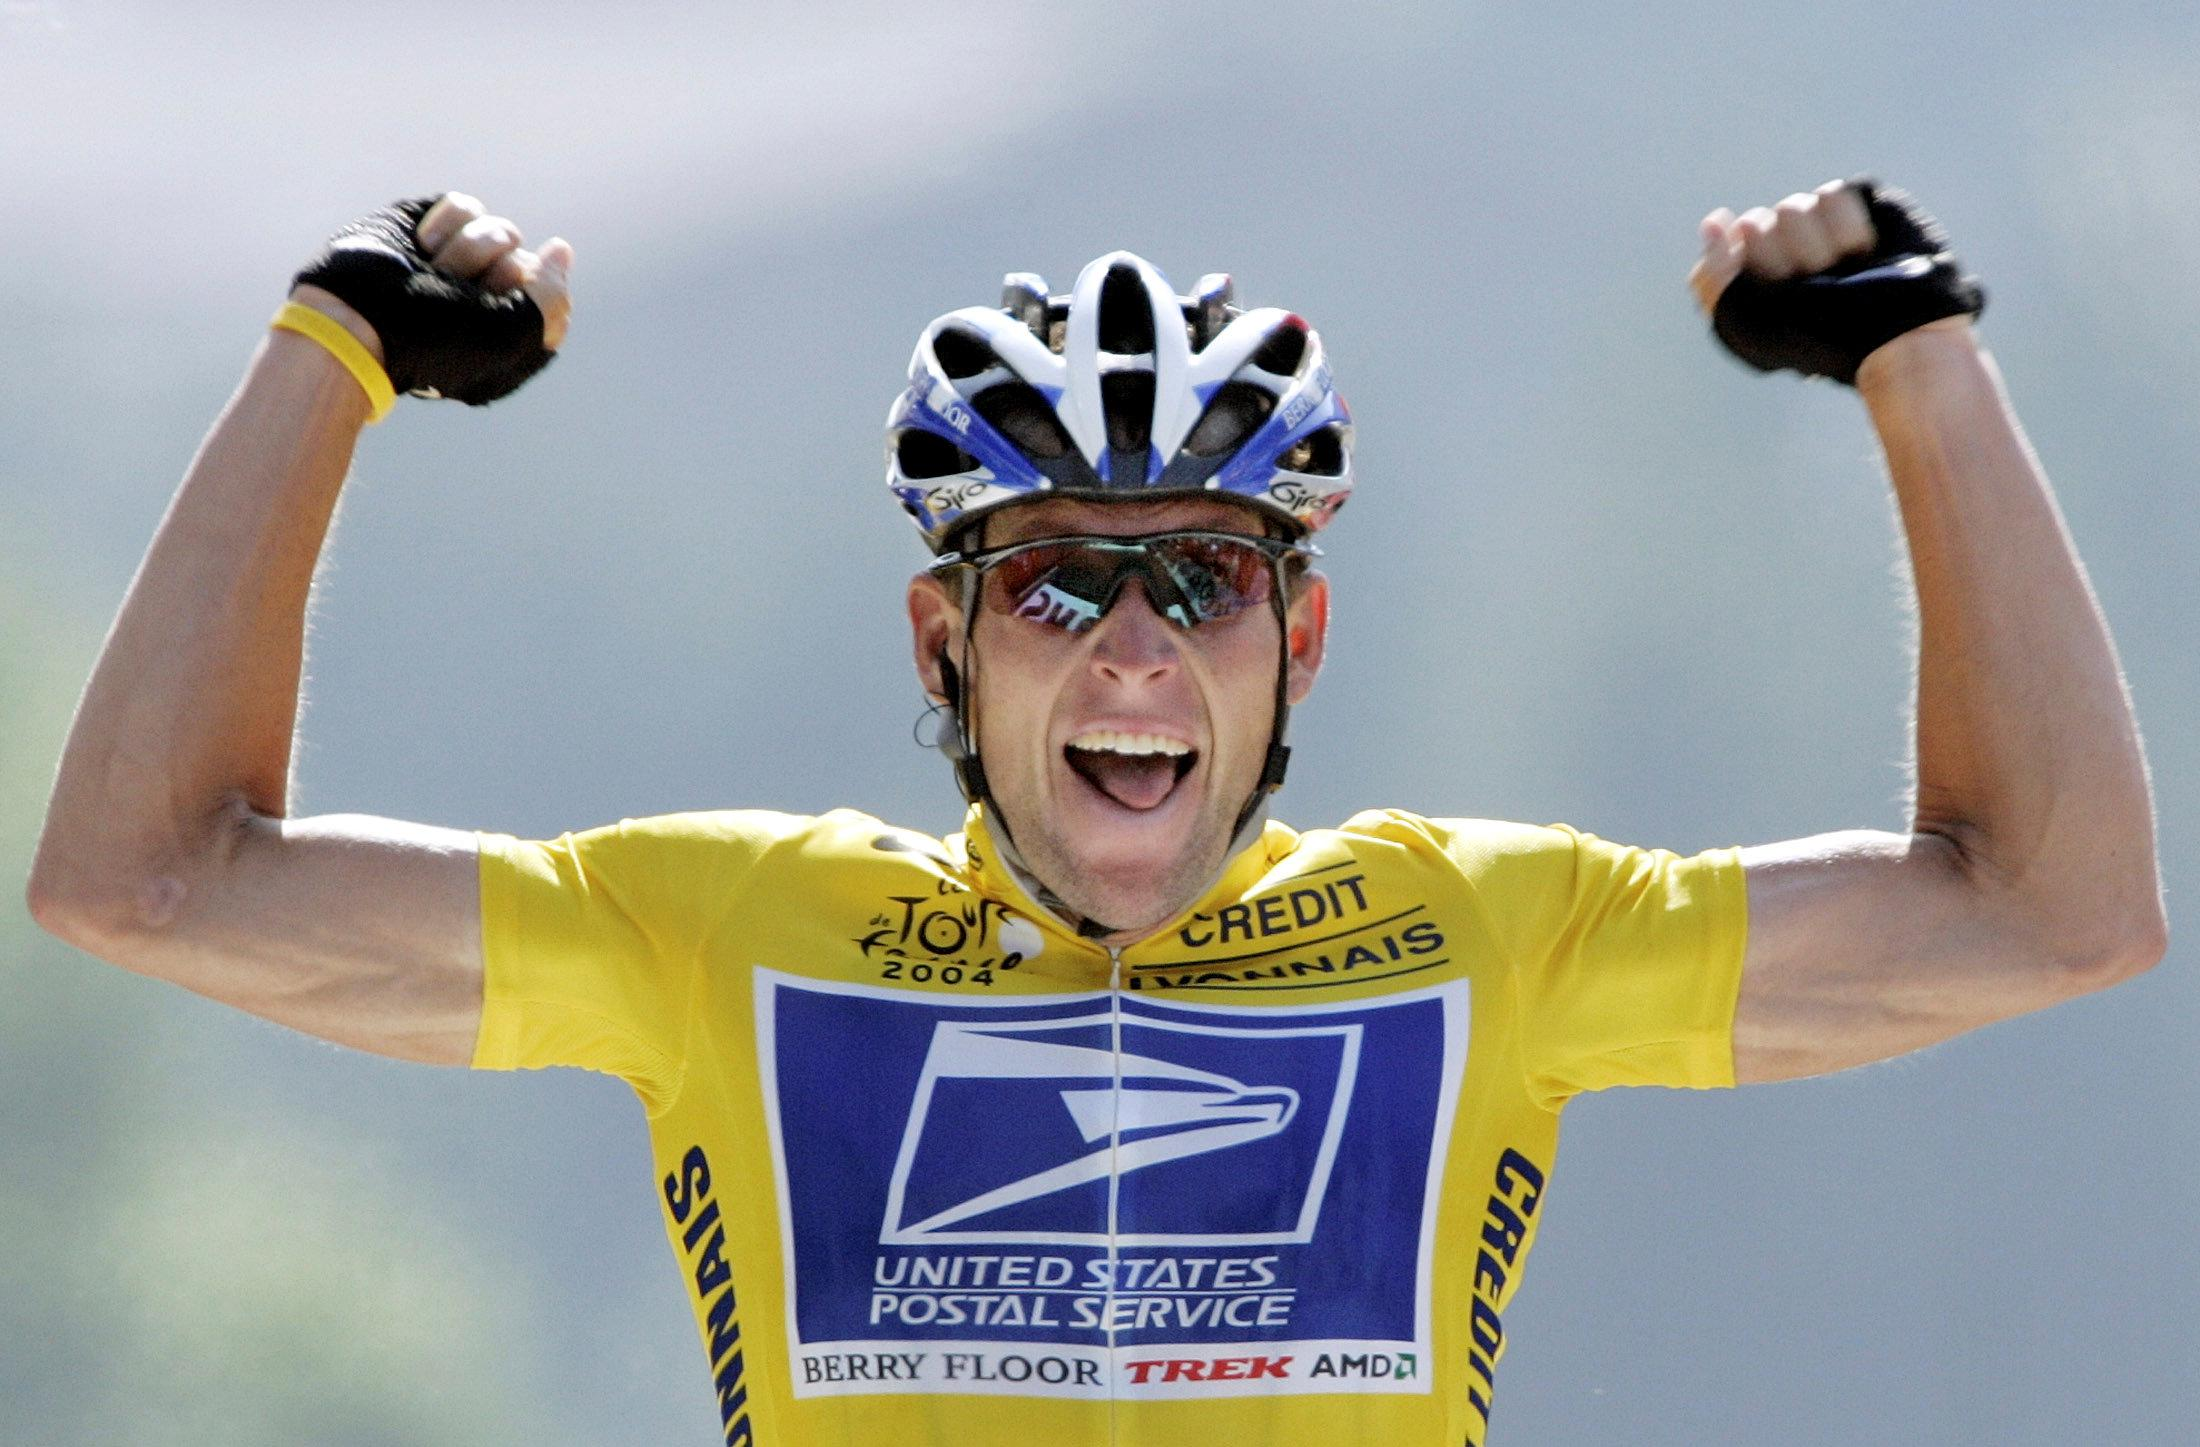 The results of Lance Armstrong from 1998 onwards have been scrubbed from the record books